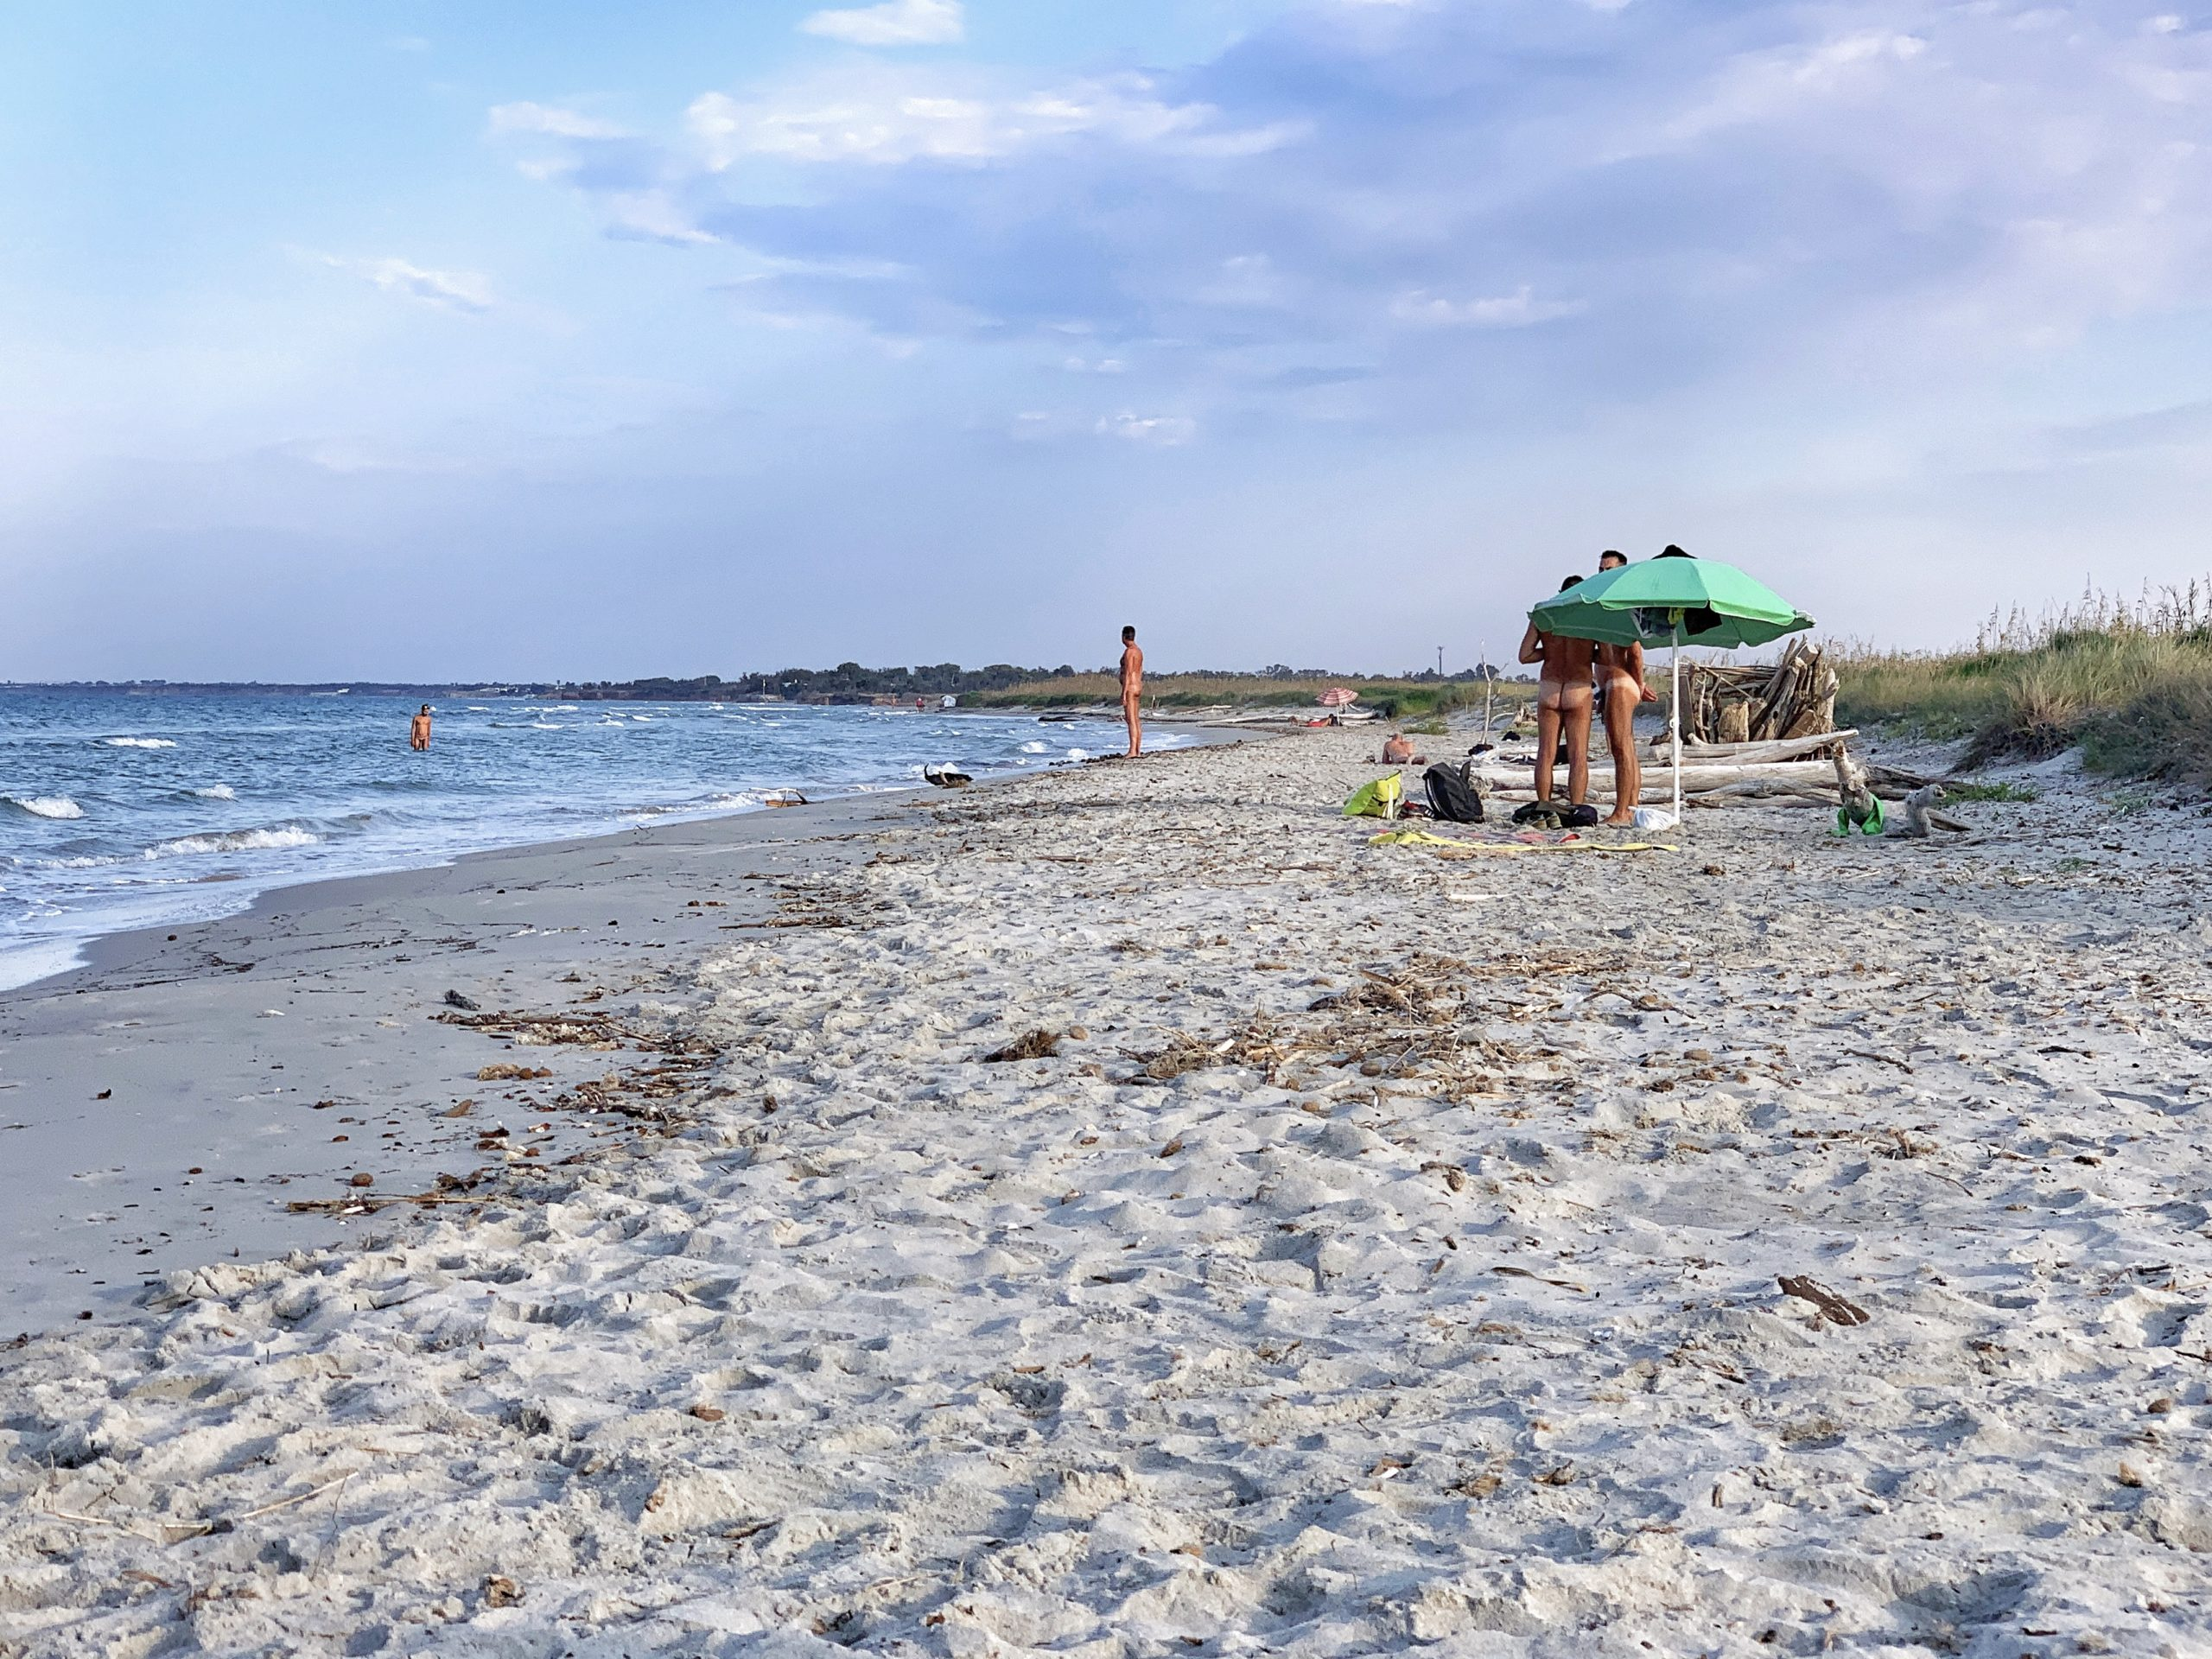 The gay and nudist naturist beach section at Torre Guaceto, Puglia. The Big Gay Guide to Puglia.